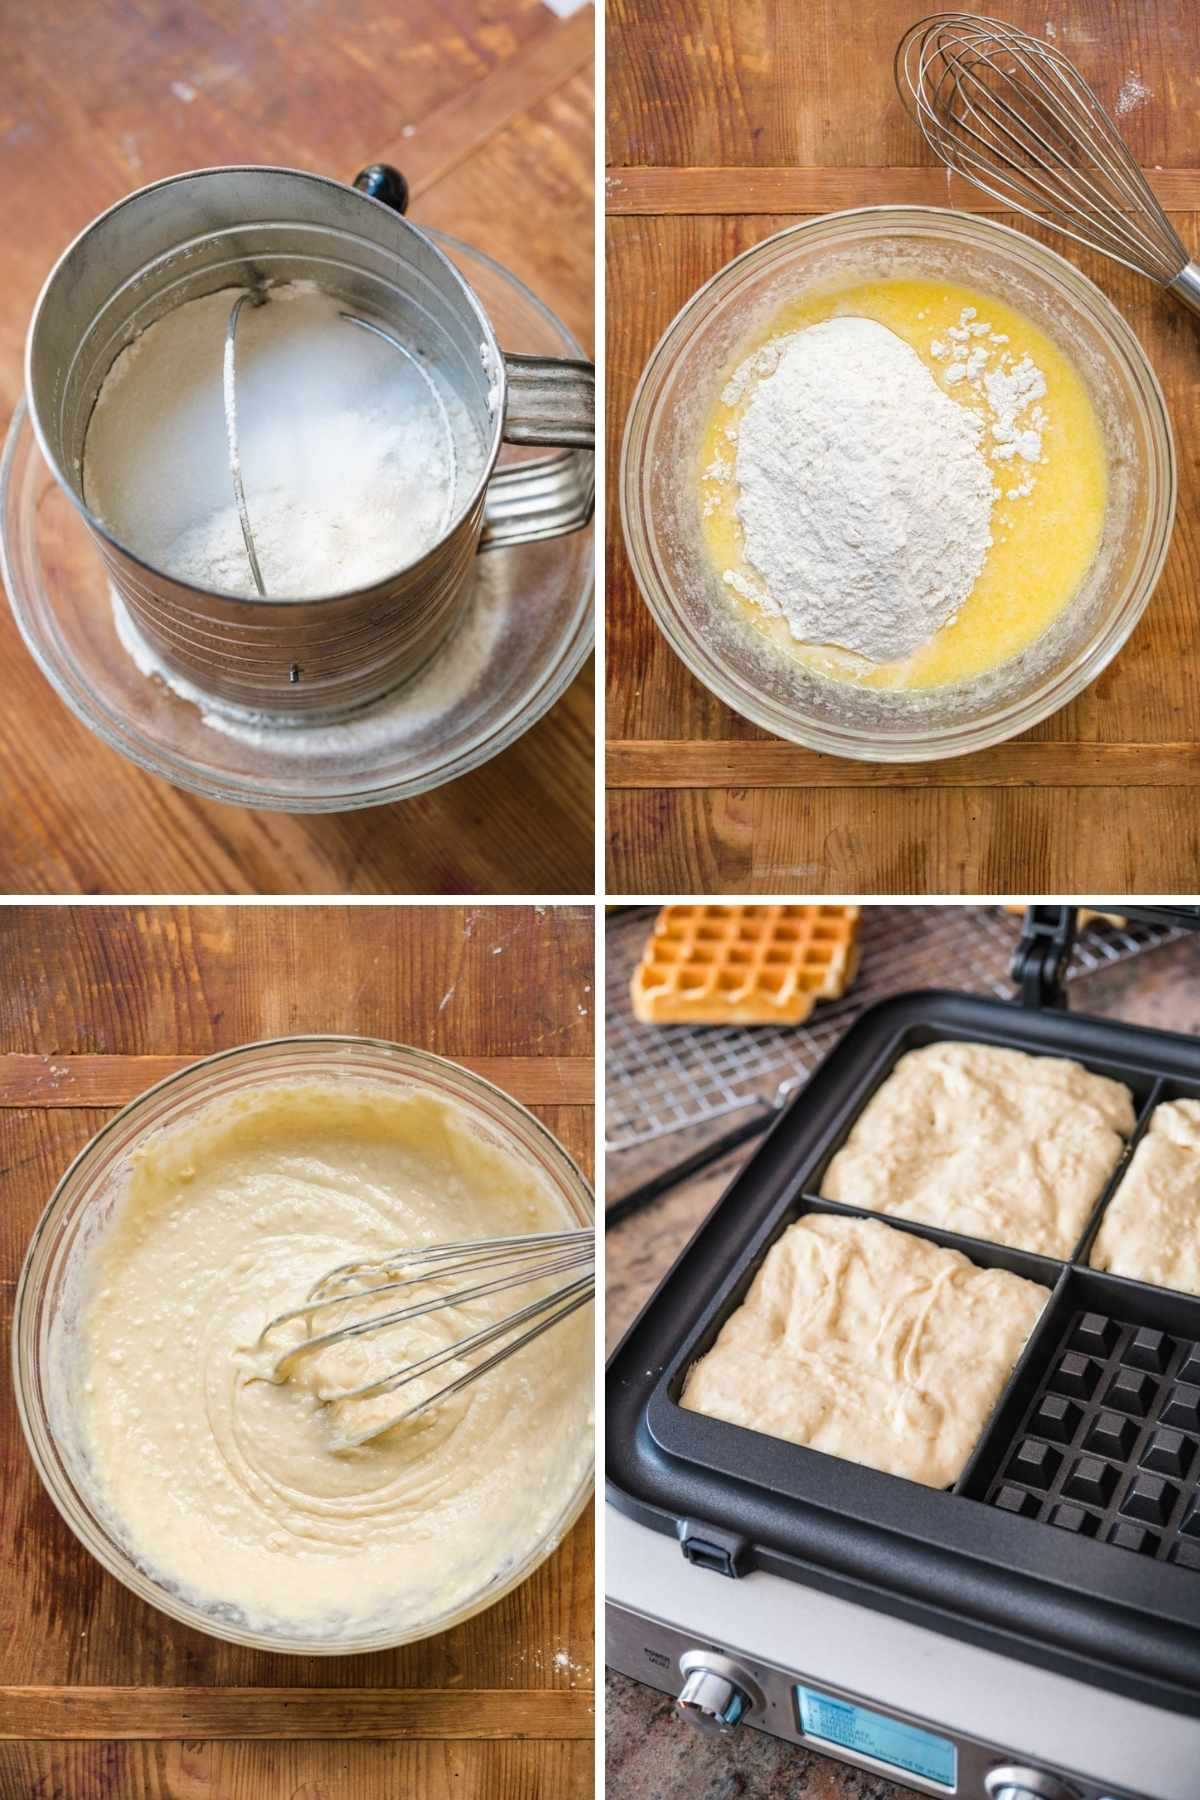 Prep Steps for Classic Waffles, ingredients in bowl, batter being stirred, batter in waffle iron.